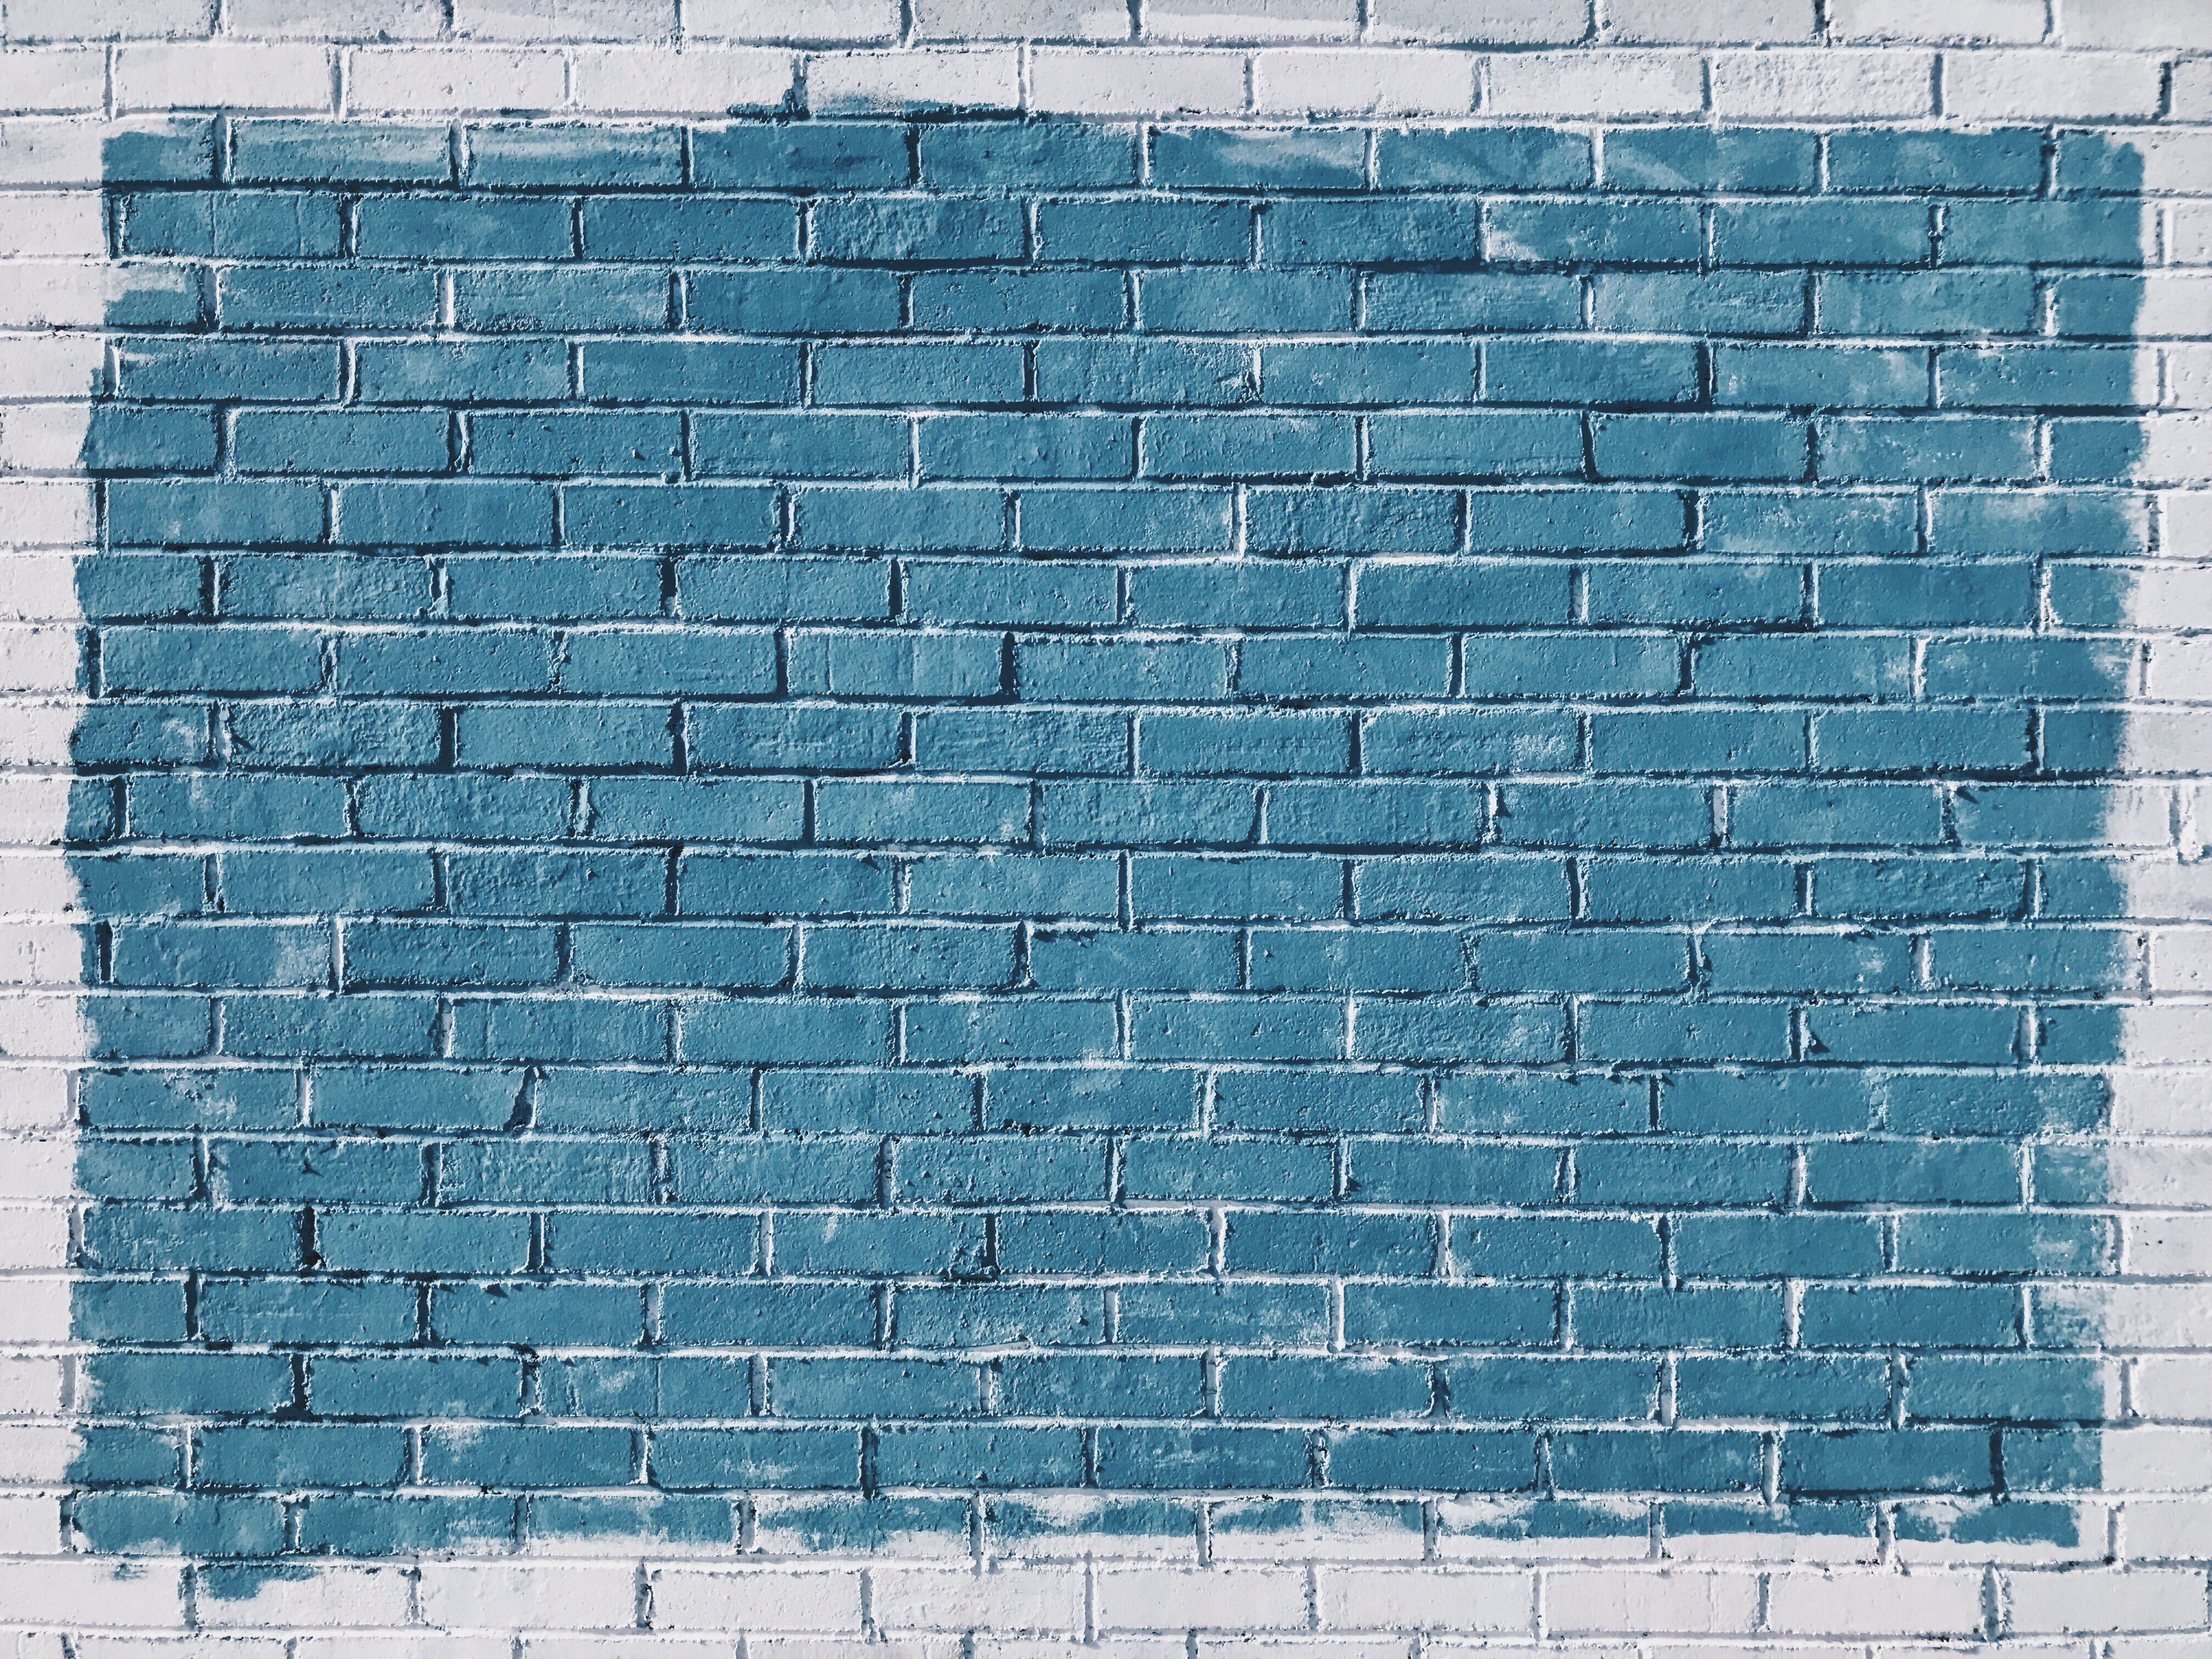 Gray Concrete Bricks Painted In Blue Blue And Gray Brick Wall Brick Color Colour Wall White Blue Brick W Murakami Quotes Dawn Quotes Book Quotes Classic